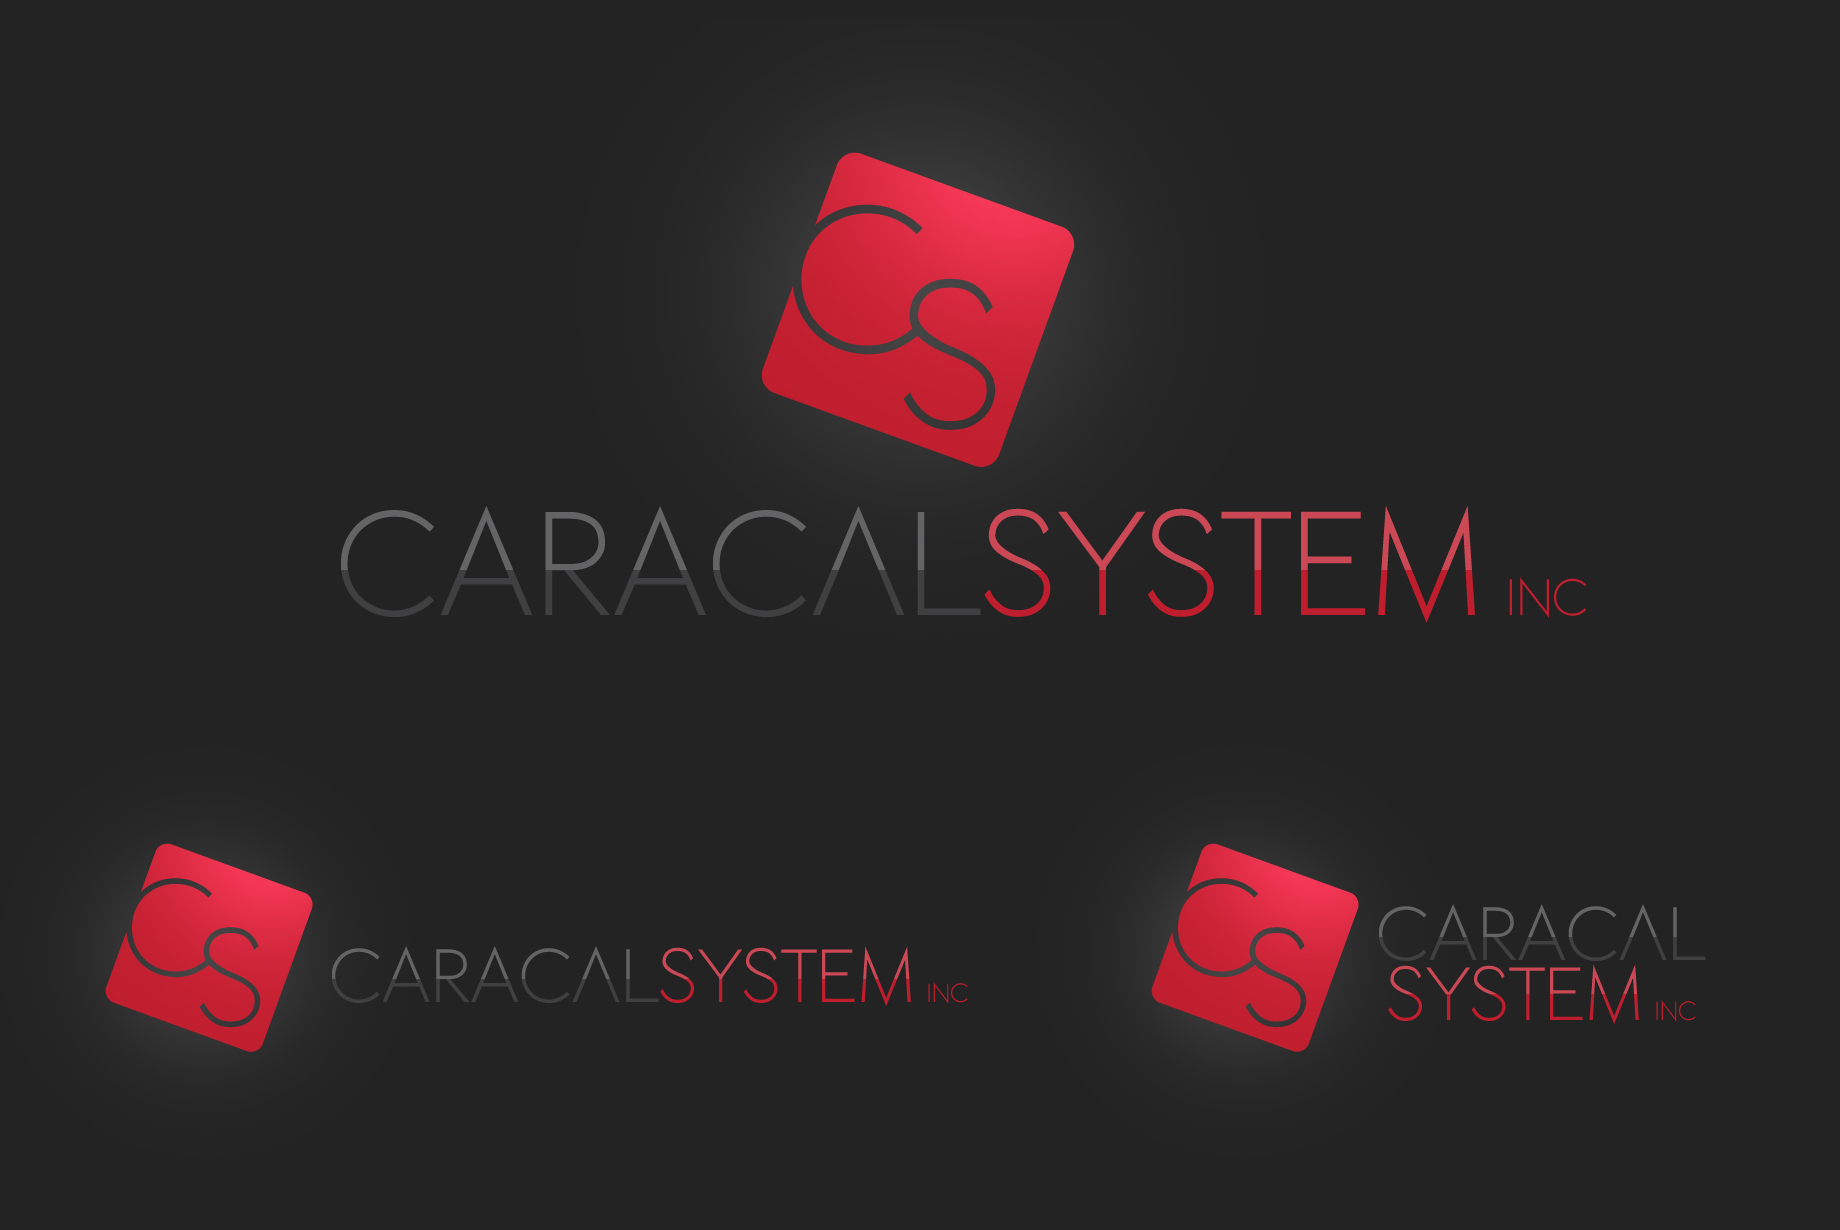 Logo Design by Jan Chua - Entry No. 128 in the Logo Design Contest Inspiring Logo Design for Caracal Systems Inc..